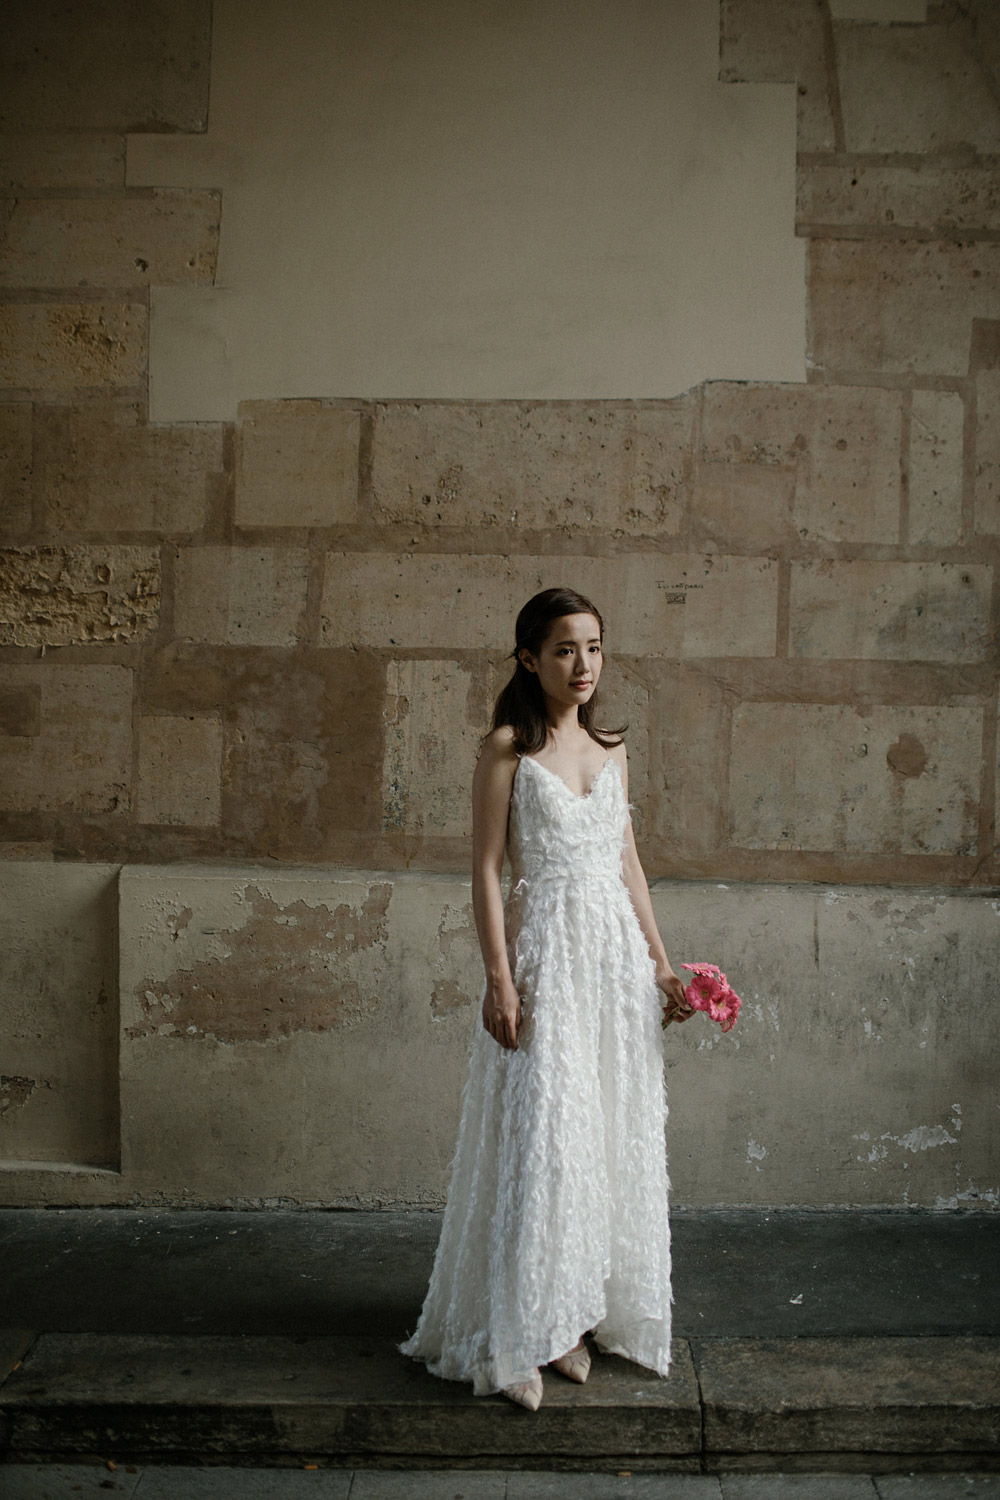 portrait of a bride in the streets of paris